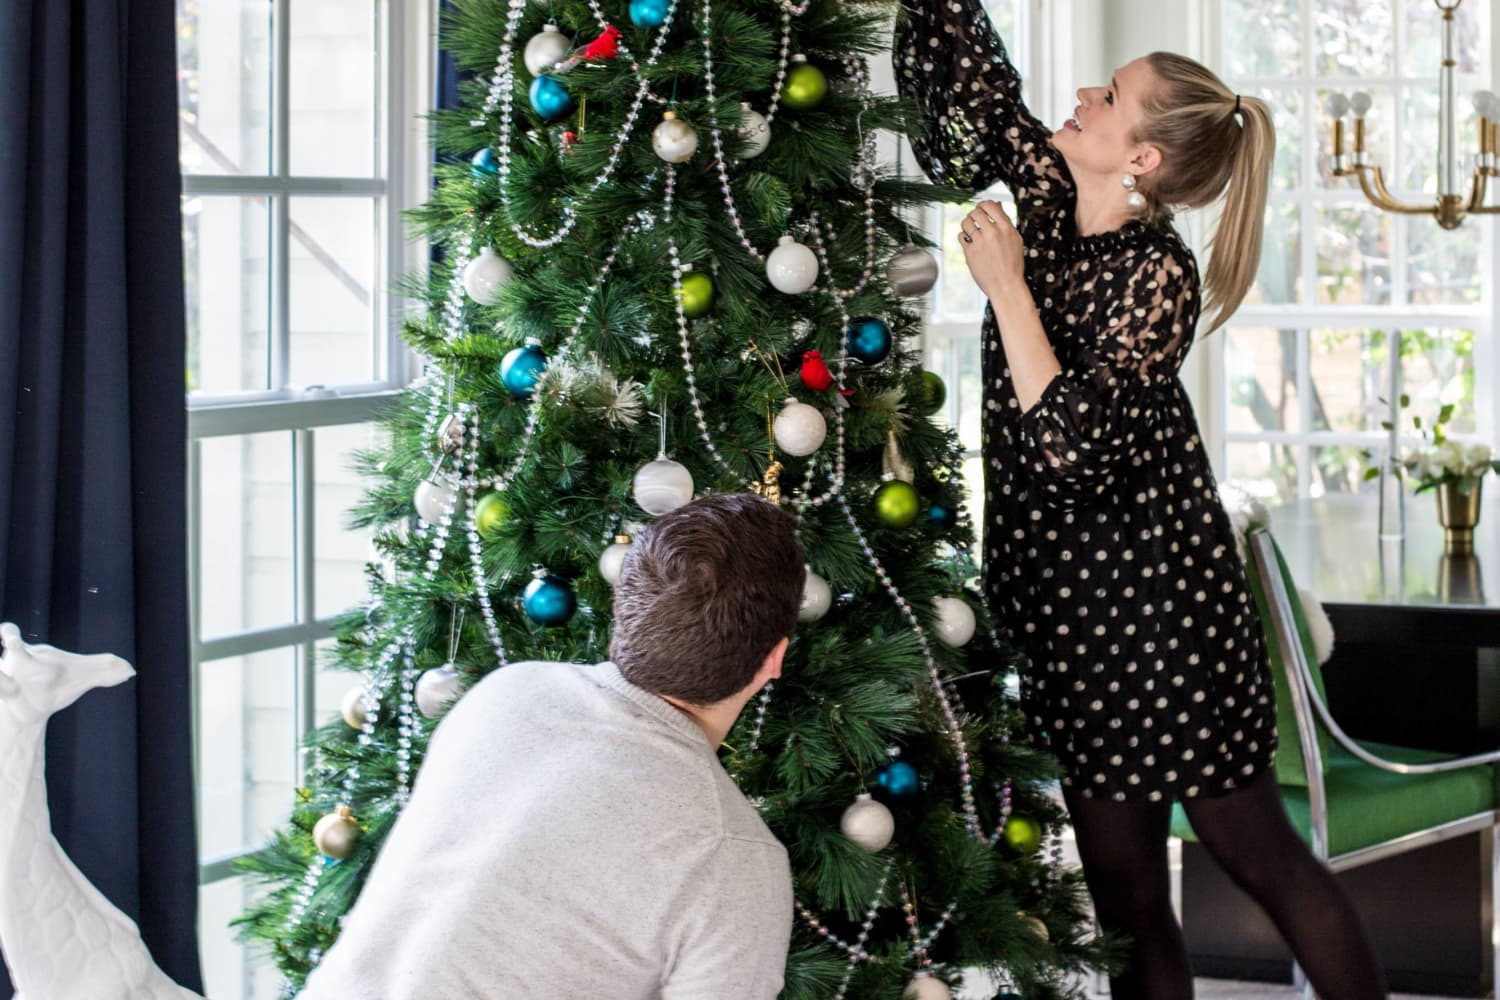 Target's Christmas Tree Kits Are the Easiest Way to Decorate This Year